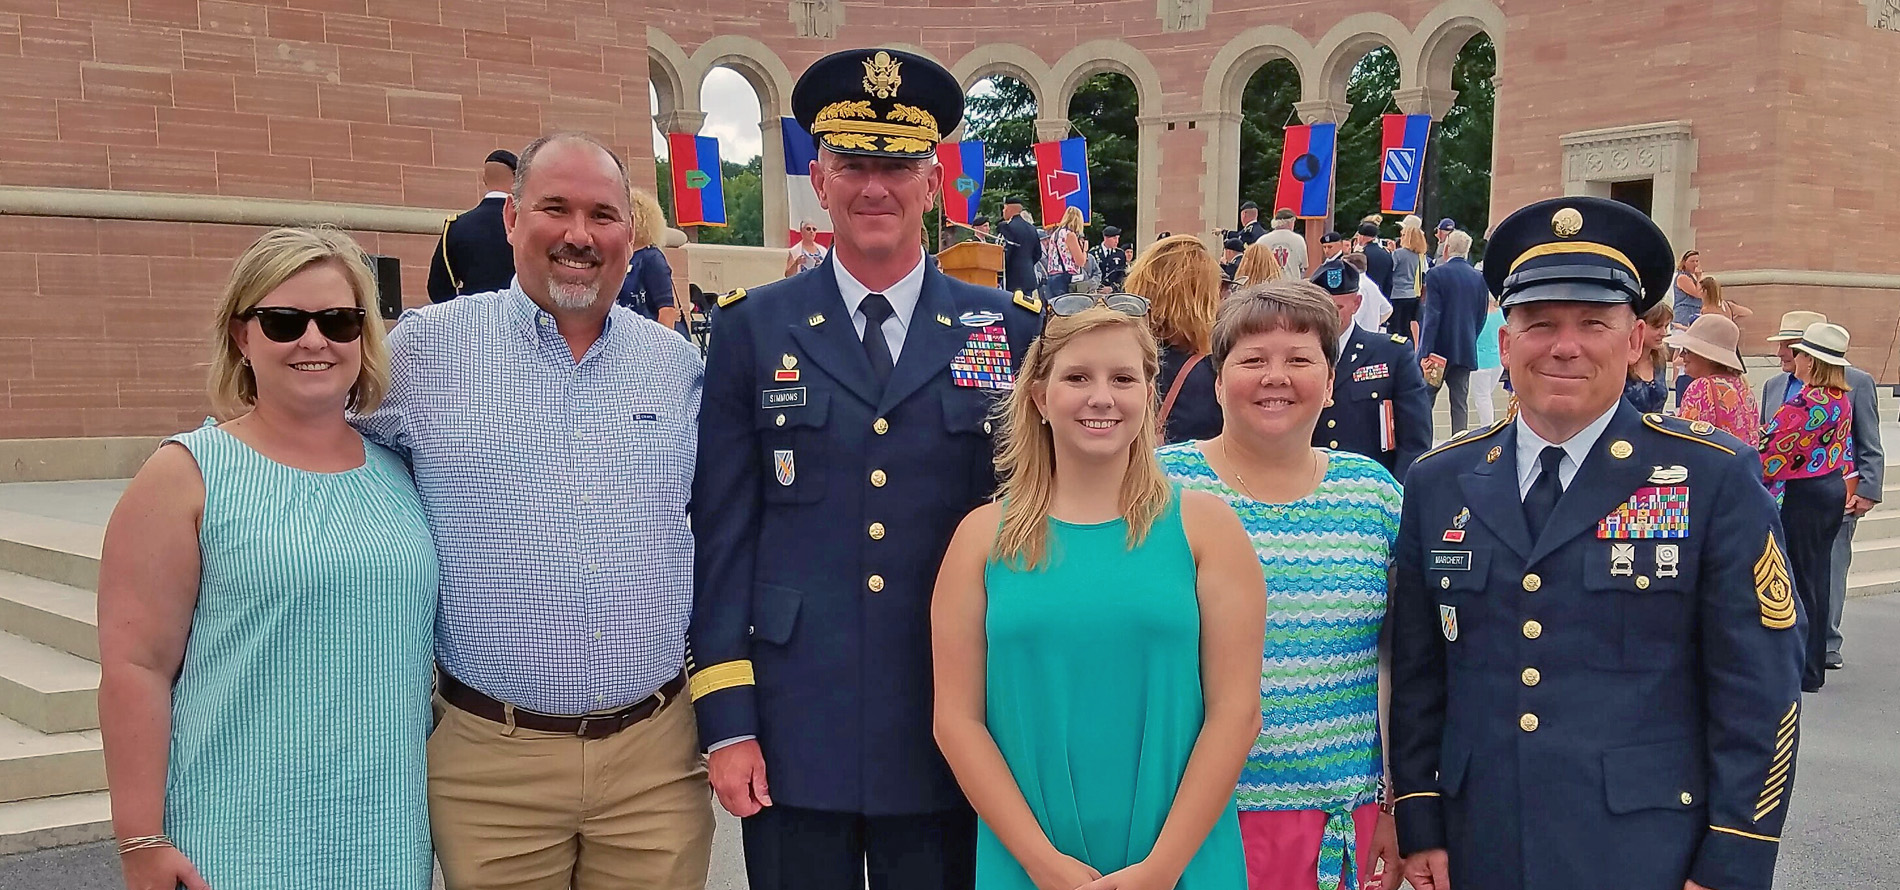 Brooklyn Reese, her family, teacher, and Georgia National Guard members share a photo opportunity during the WWI Centennial Commemoration ceremony.